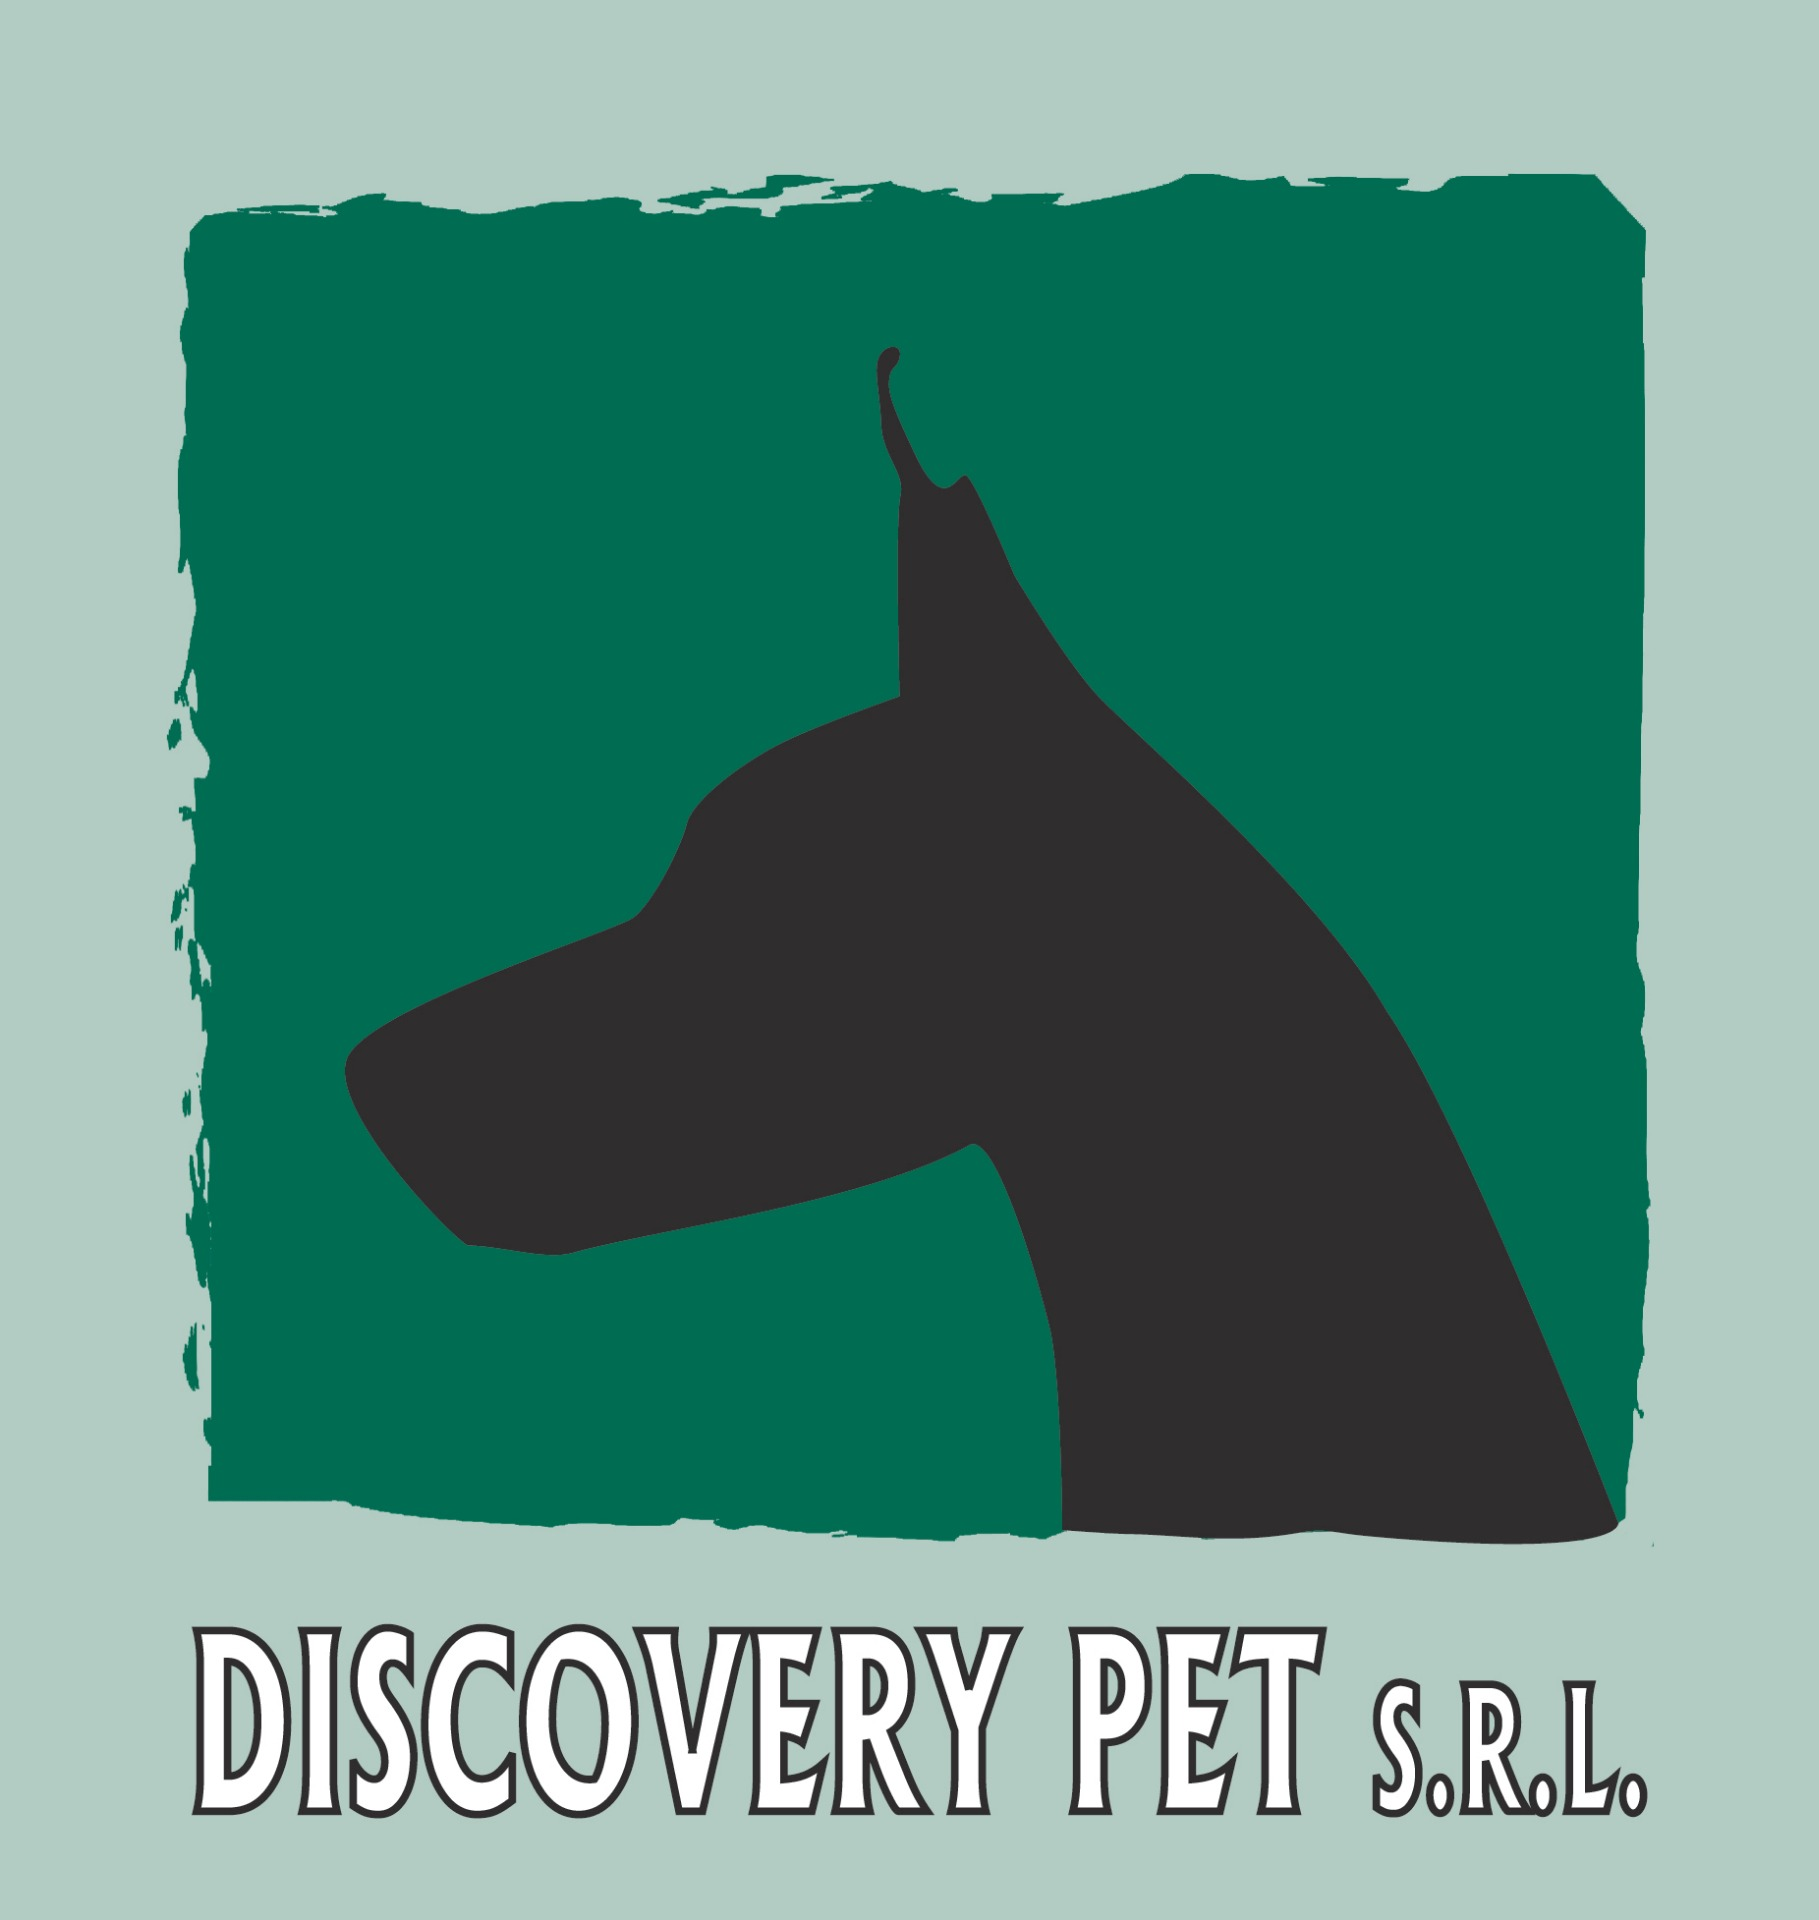 DISCOVERY PET SRL